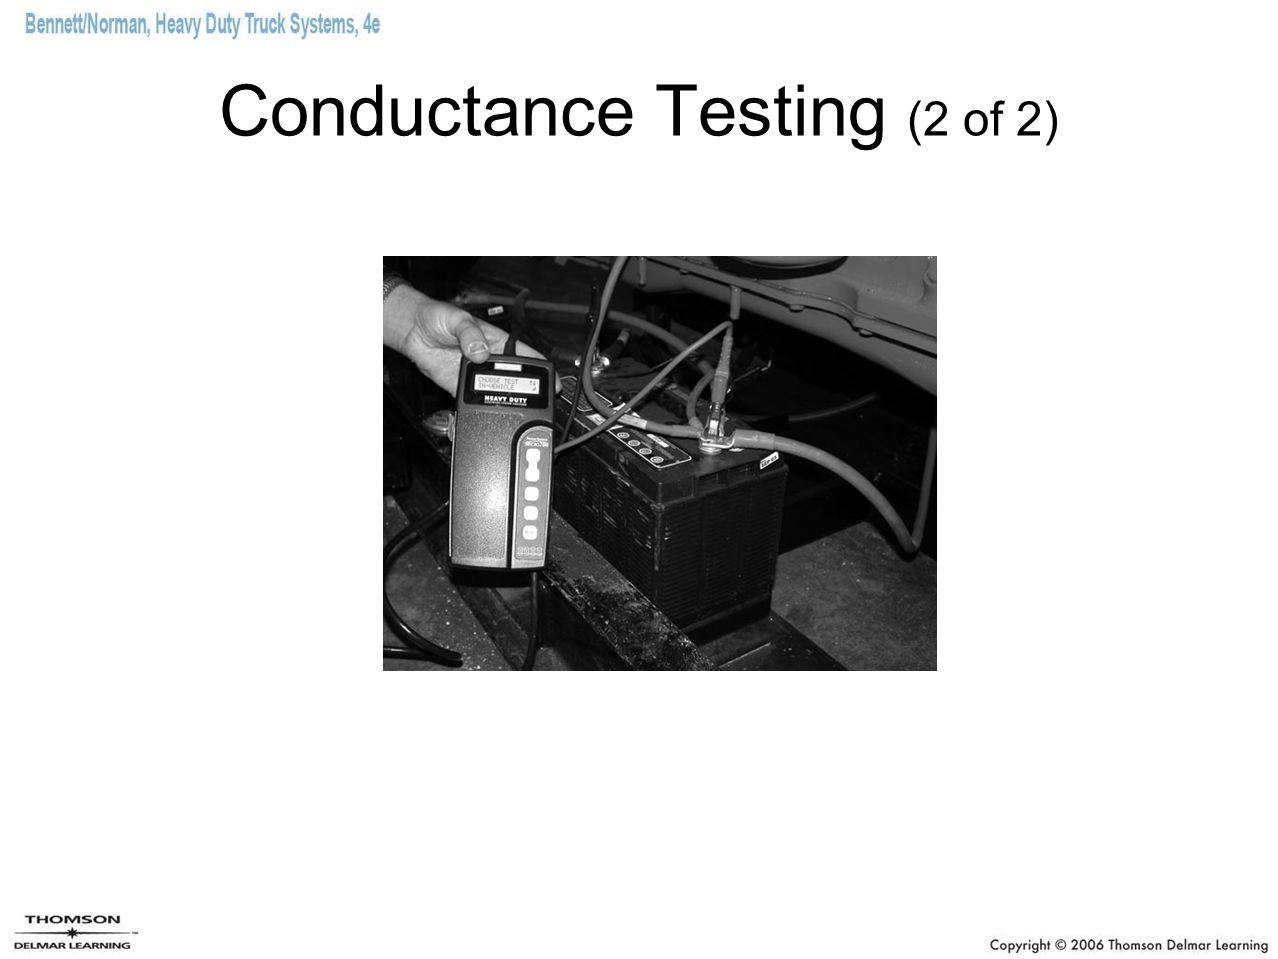 Conductance Testing (2 of 2)